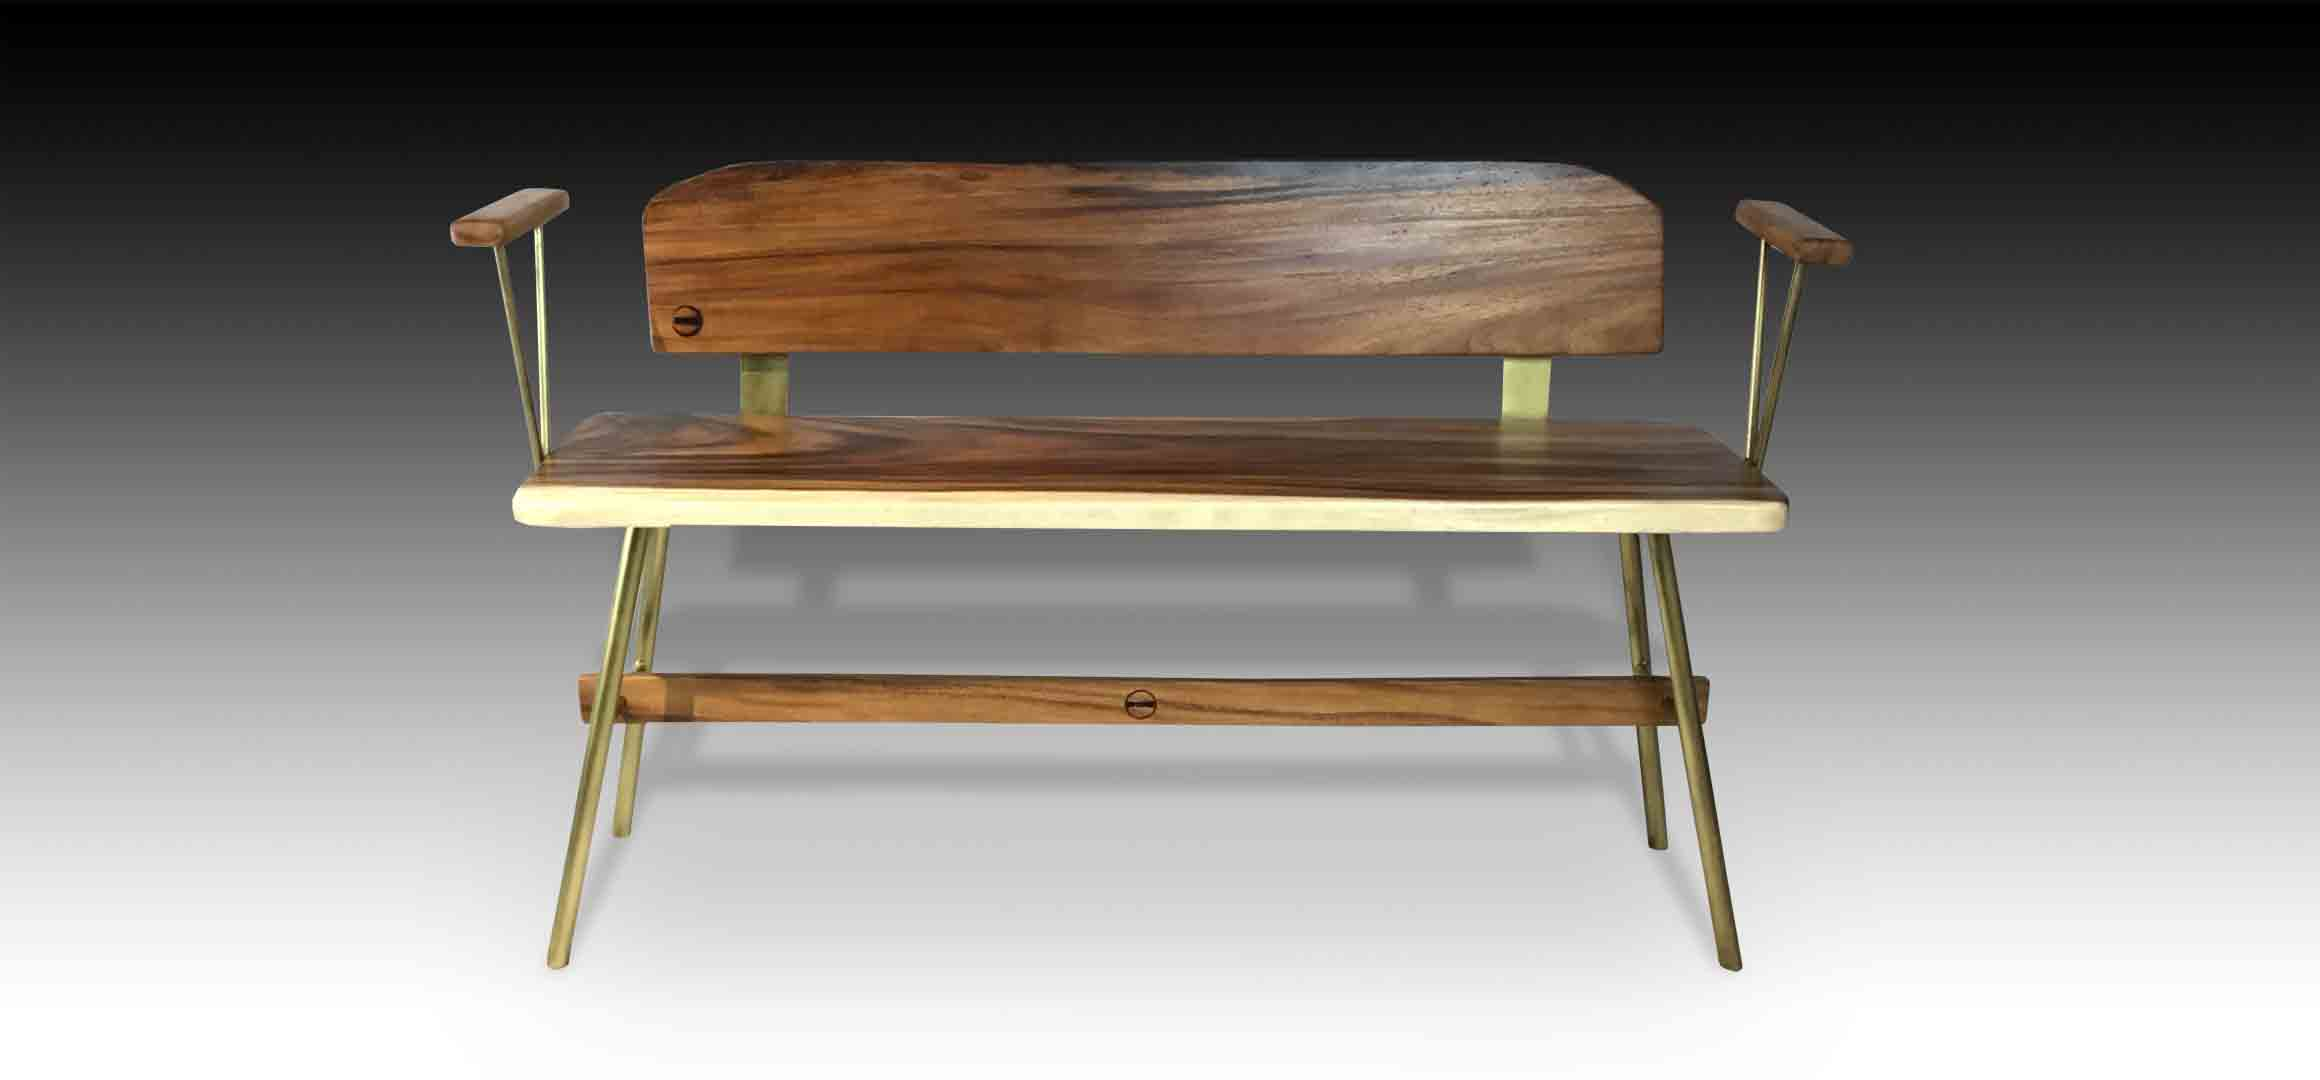 Vernon Gold Suar wood Bench front view